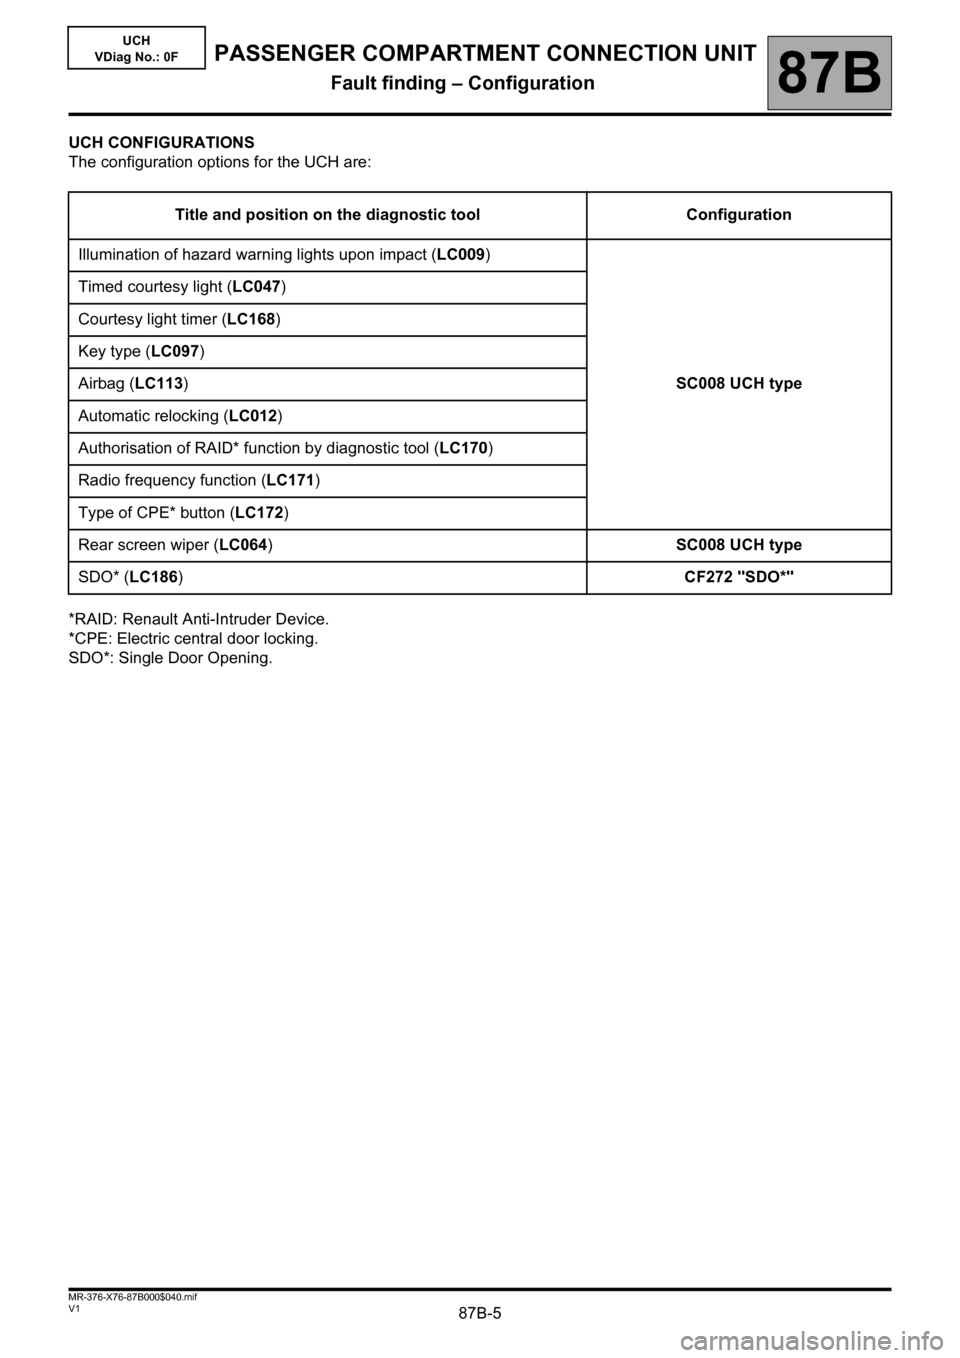 RENAULT KANGOO 2013 X61 / 2.G Passenger Comparment Connection Unit Workshop Manual 87B-5V1 MR-376-X76-87B000$040.mif 87B UCH VDiag No.: 0F UCH CONFIGURATIONS The configuration options for the UCH are: *RAID: Renault Anti-Intruder Device. *CPE: Electric central door locking. SDO*: Si